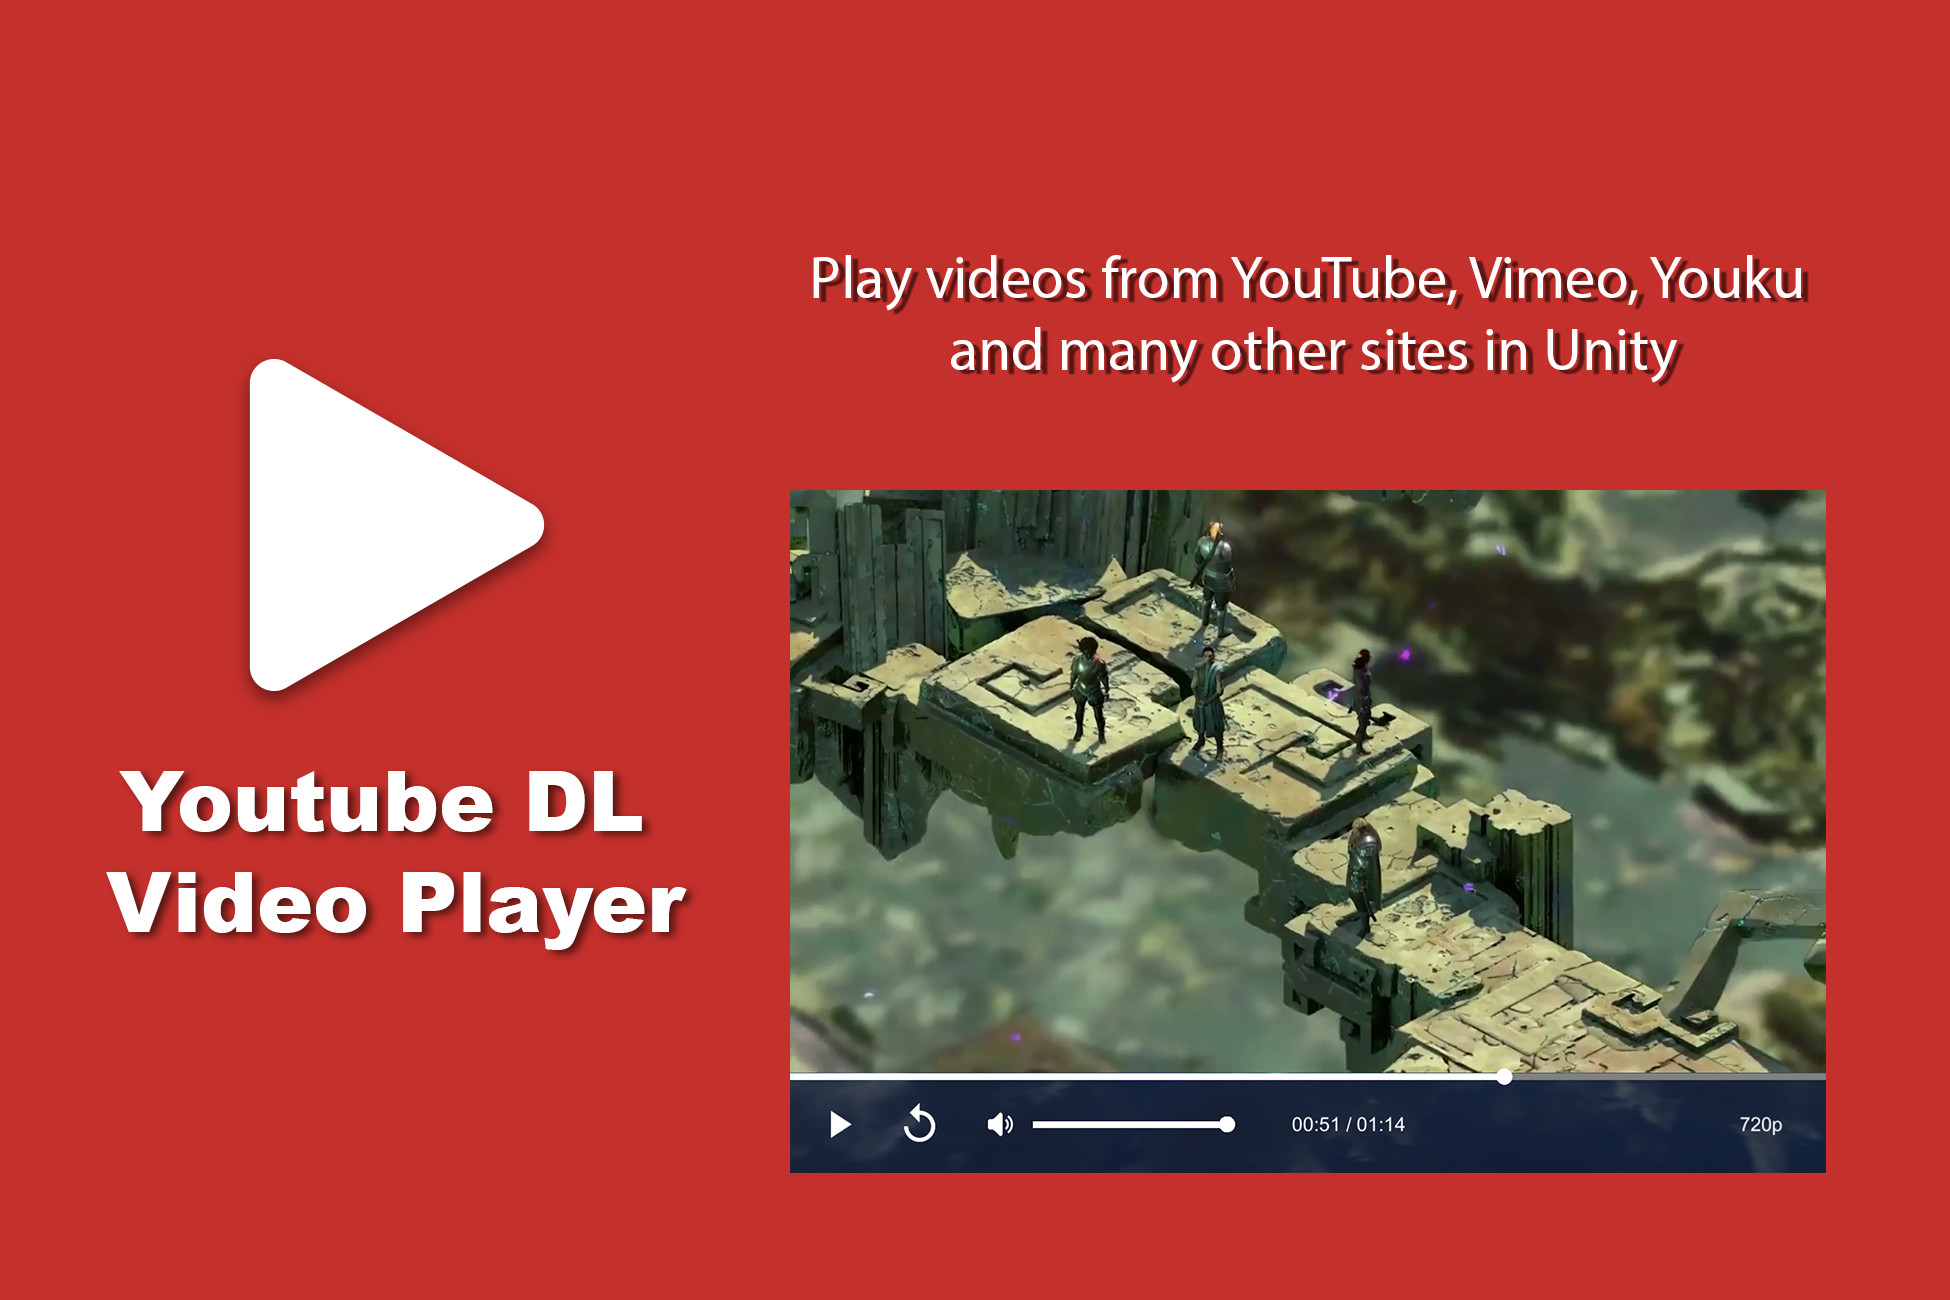 Youtube DL Video Player